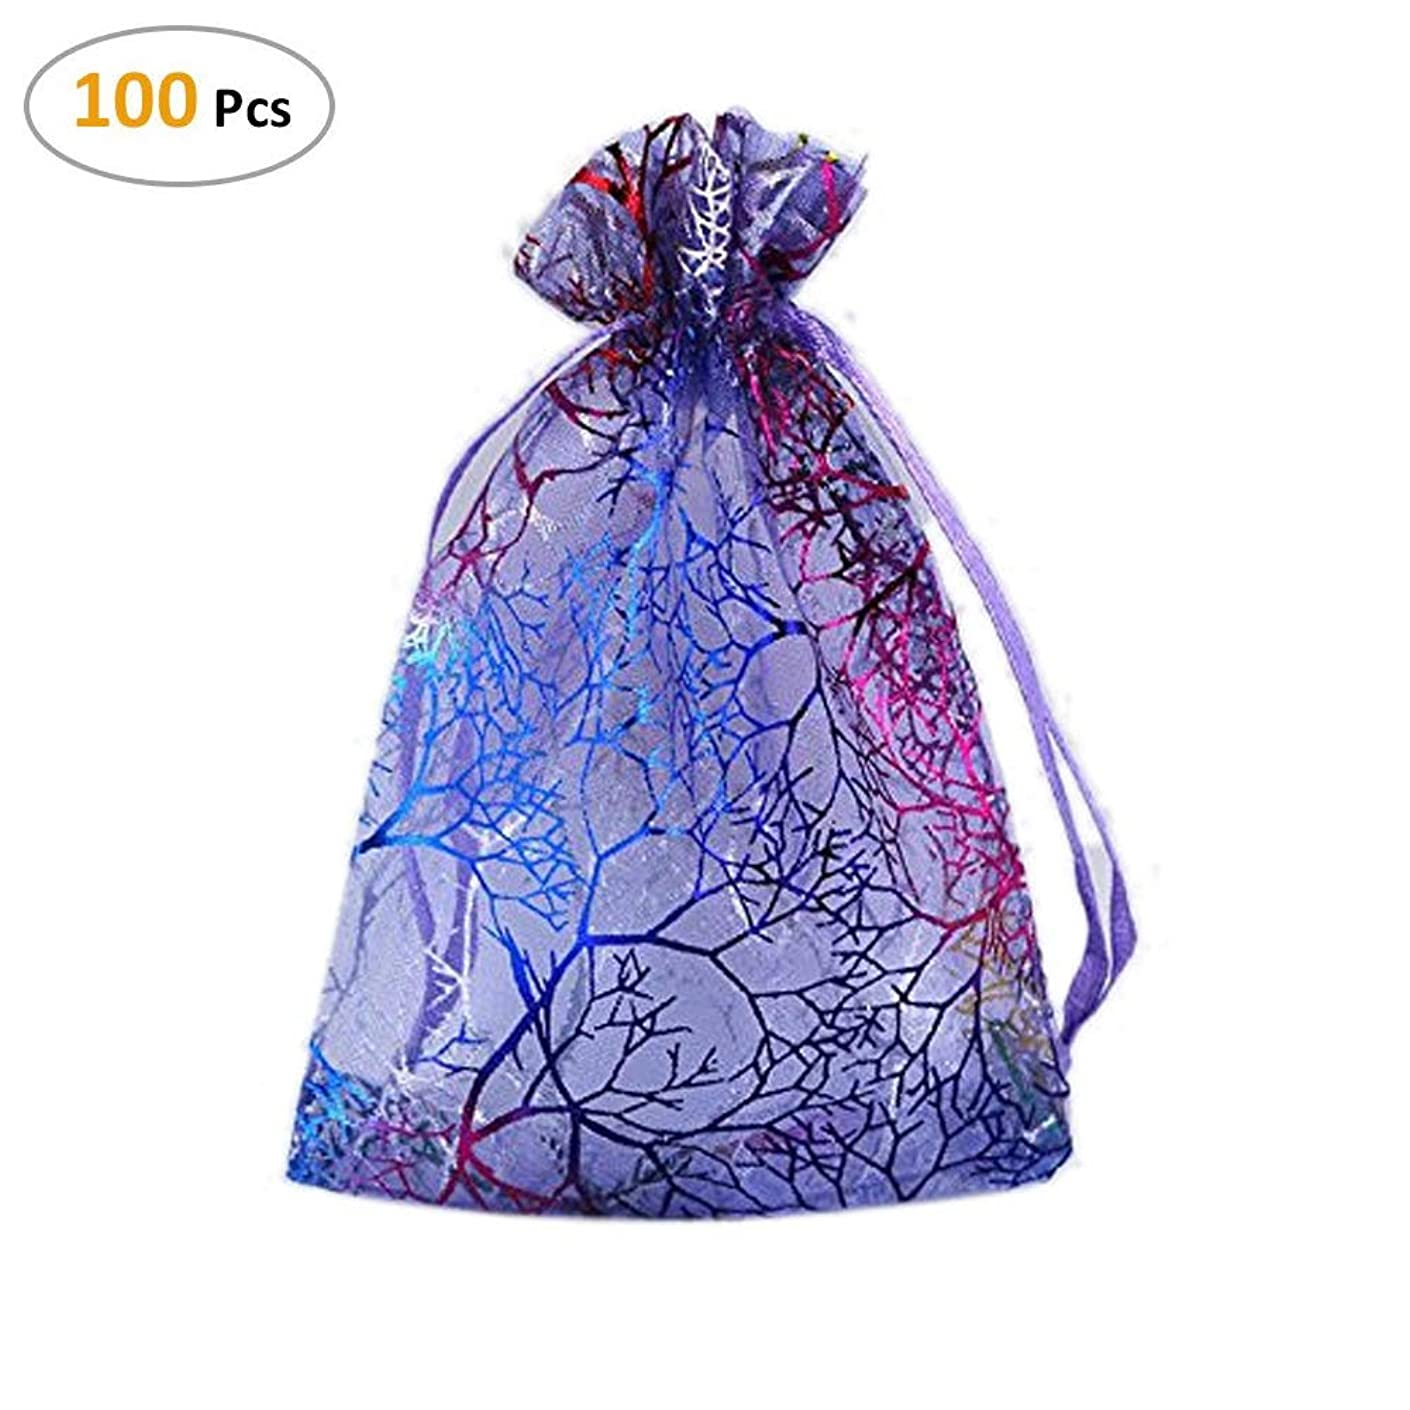 100Pcs Organza Coralline Drawstring Pouches Jewelry Bags Makeup Bags Candy Pouch Wedding Party Candy Chocolate Christmas Favor Gift Bags 3.35